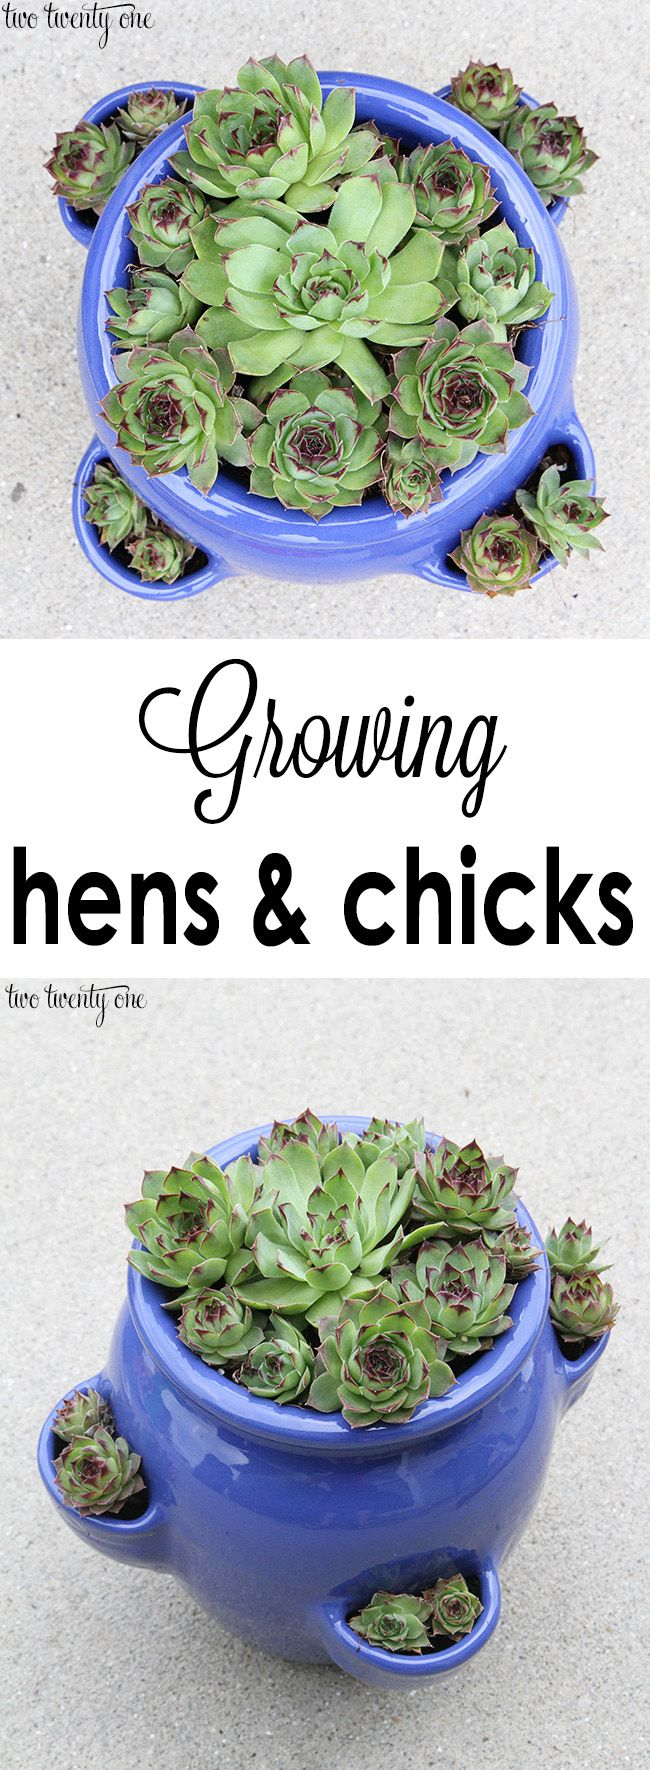 Tips and tricks for growing hens and chicks - replanting some of these beauties from my parents!